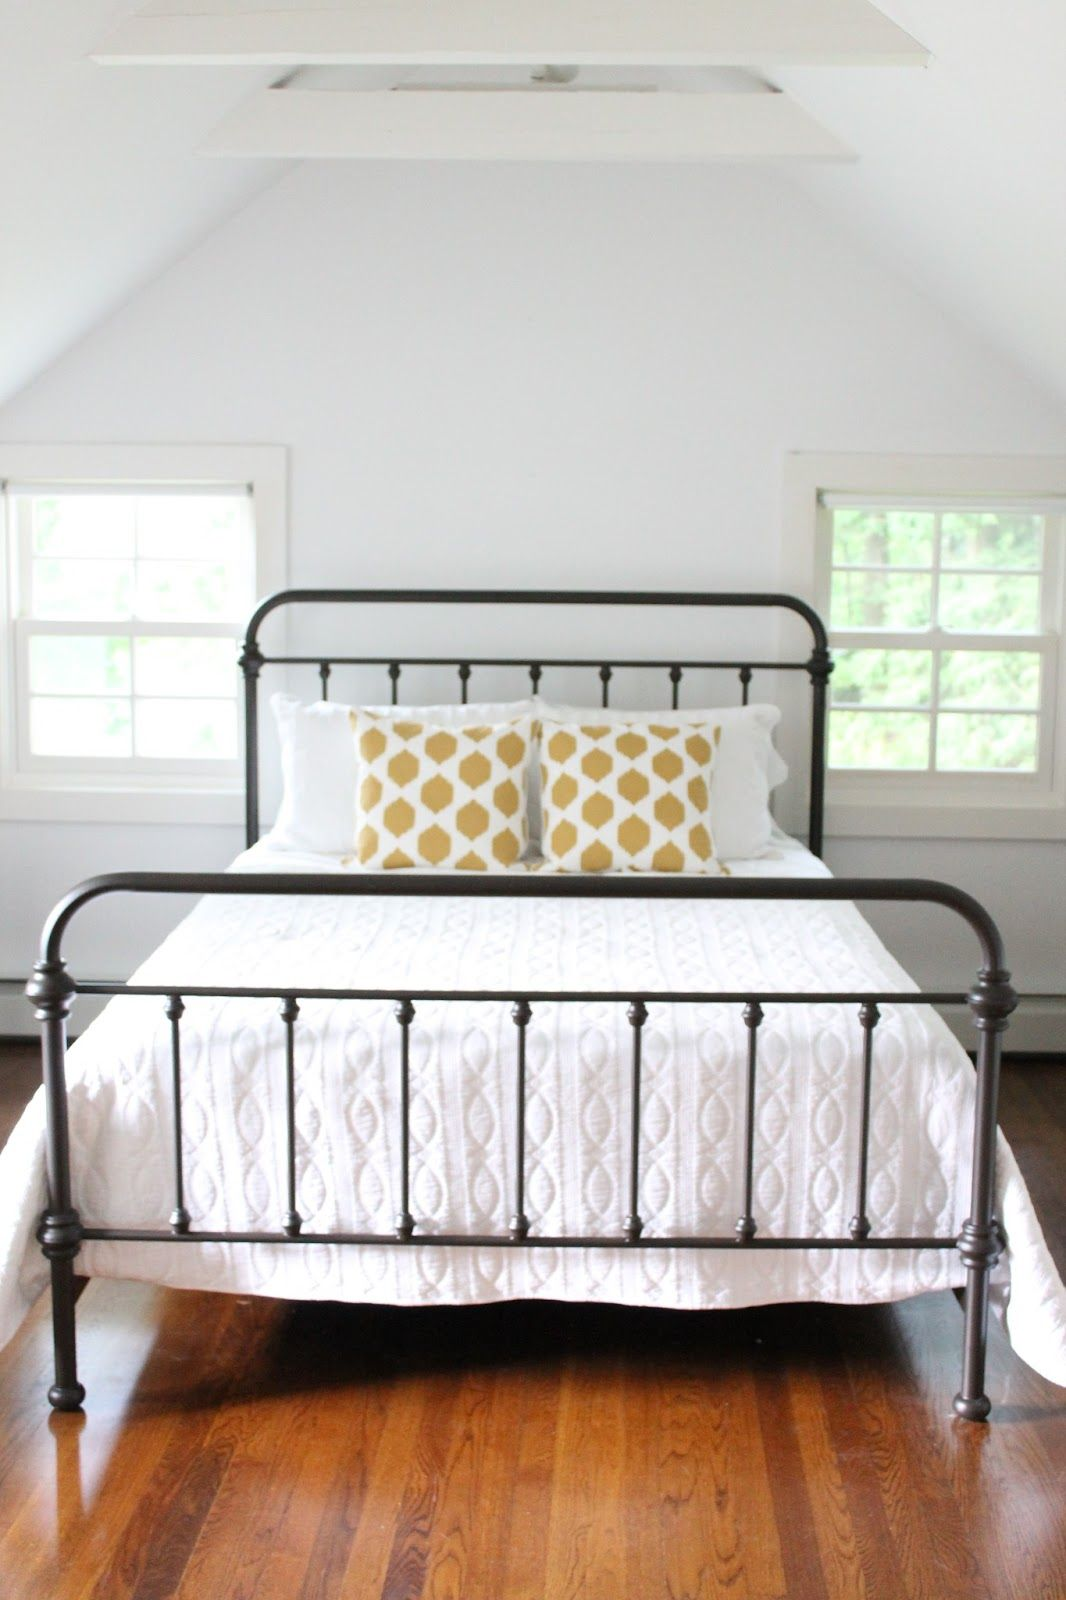 iron bed iu0027m debating painting mine a different color than brown